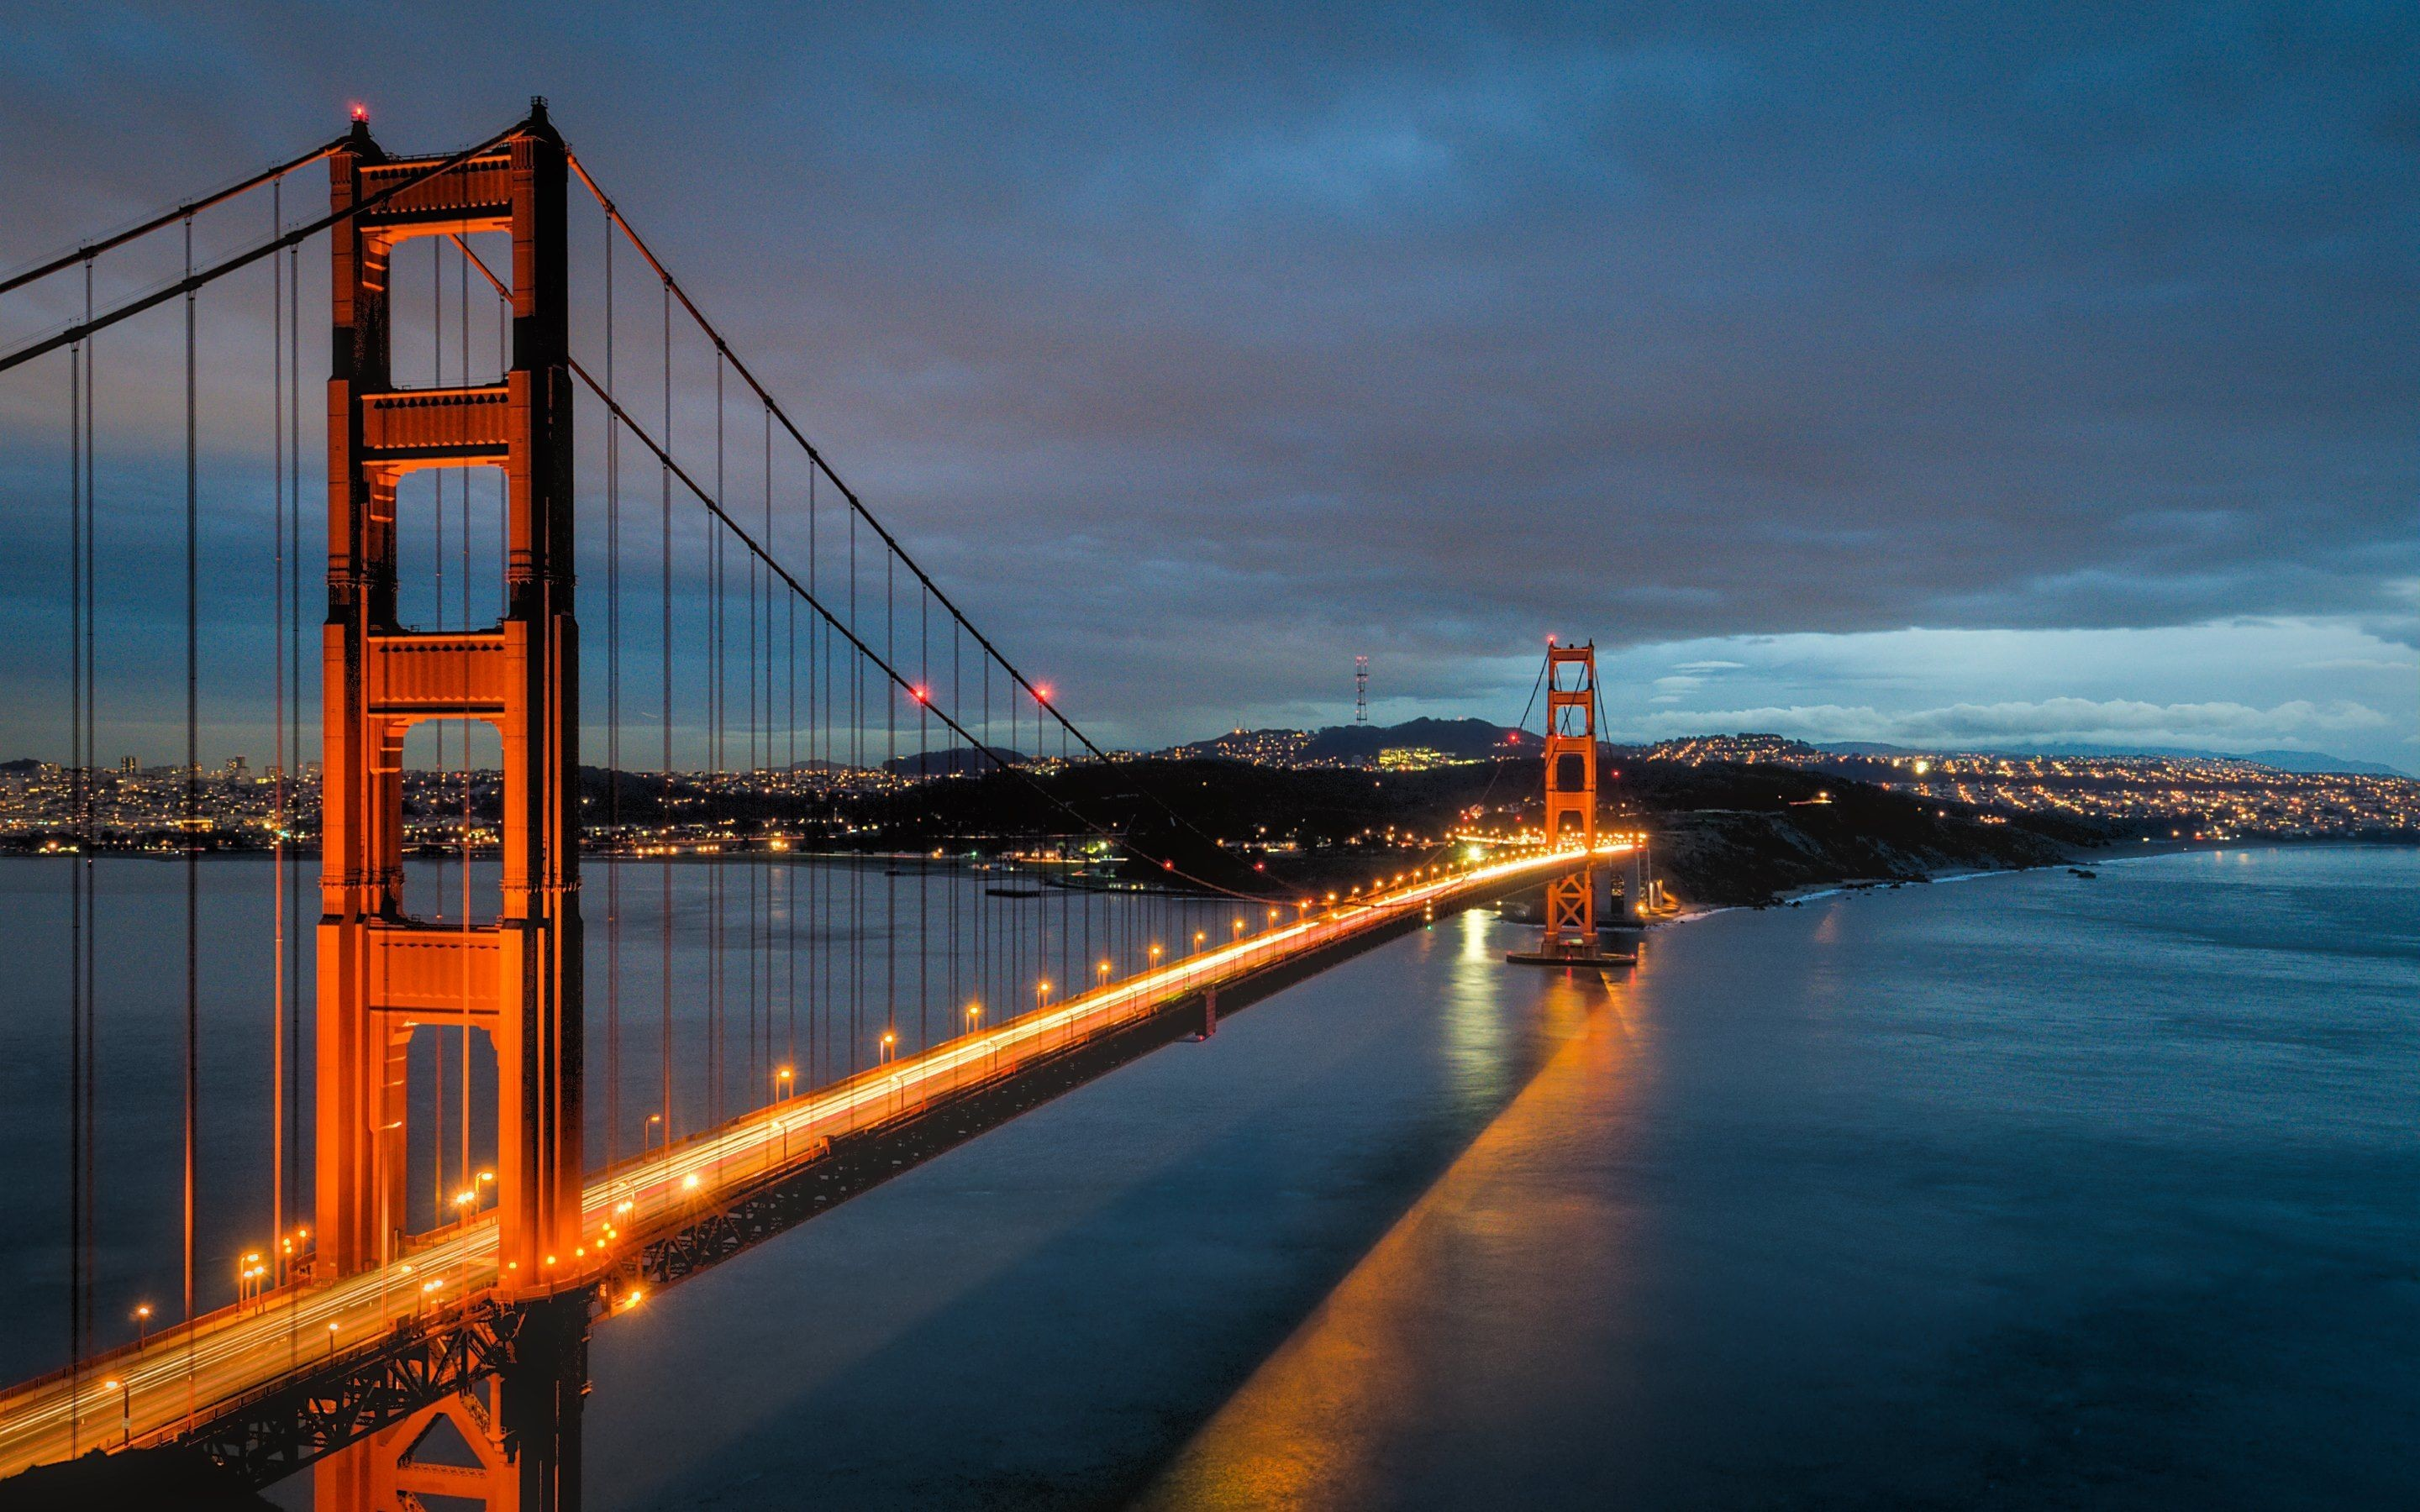 Res: 2880x1800, Dusk, Landmark, Golden Gate Bridge, San Francisco, Water Wallpaper in   Resolution